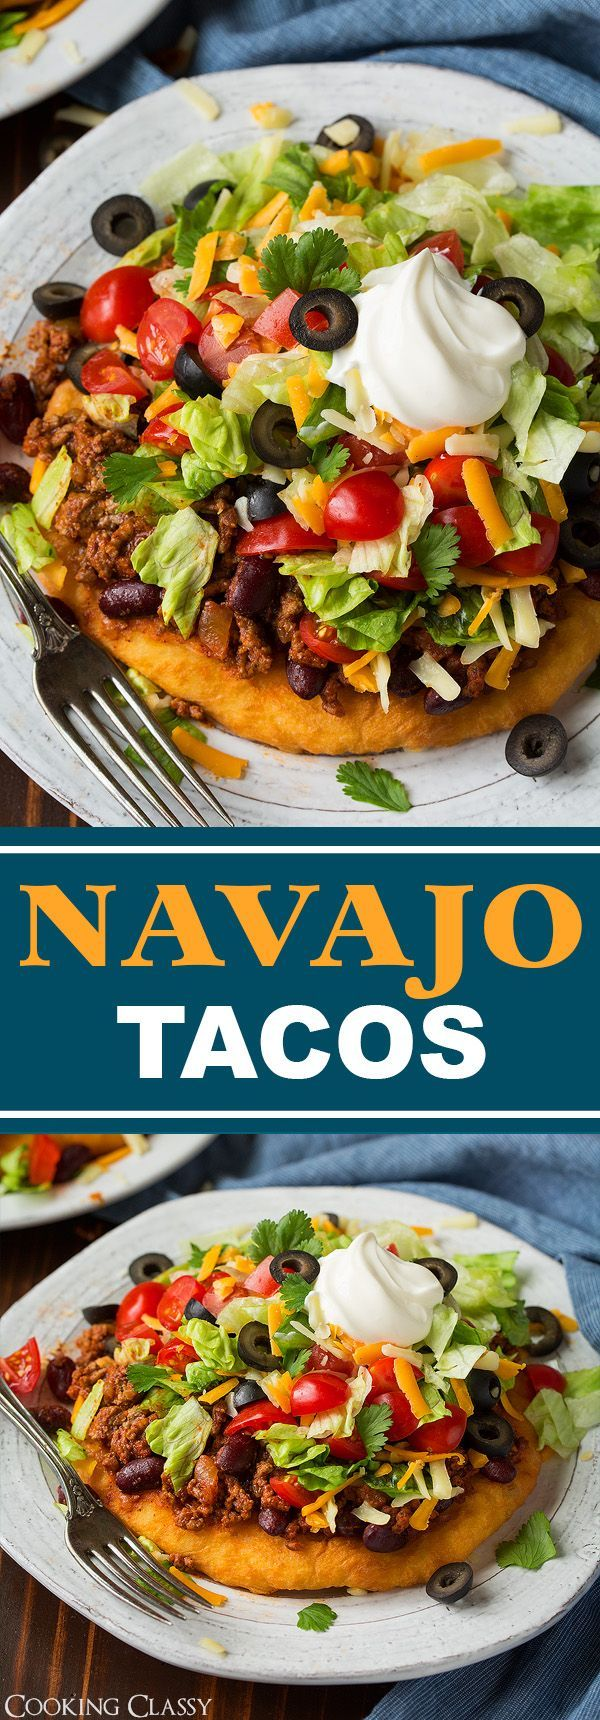 Mom's Navajo Tacos and Indian Fry Bread - Cooking Classy (Baked Mexican Recipes)